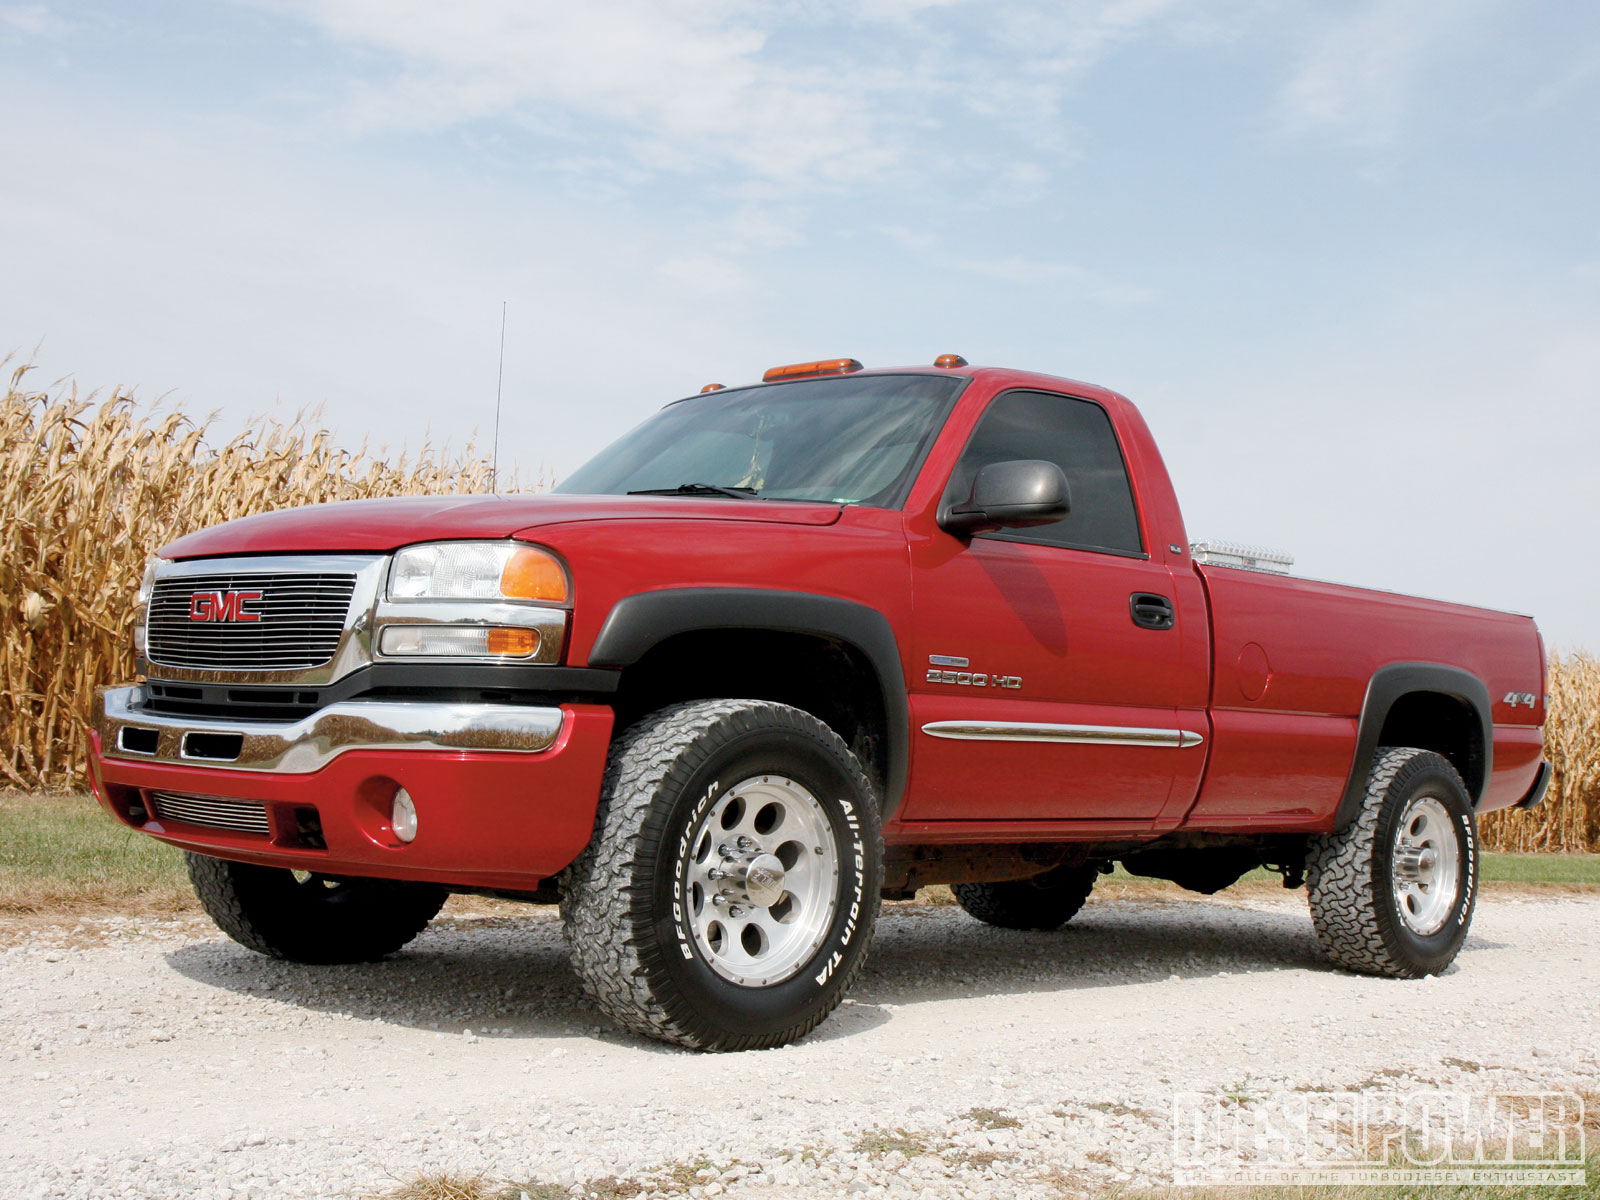 2003 GMC Sierra 2500hd #3